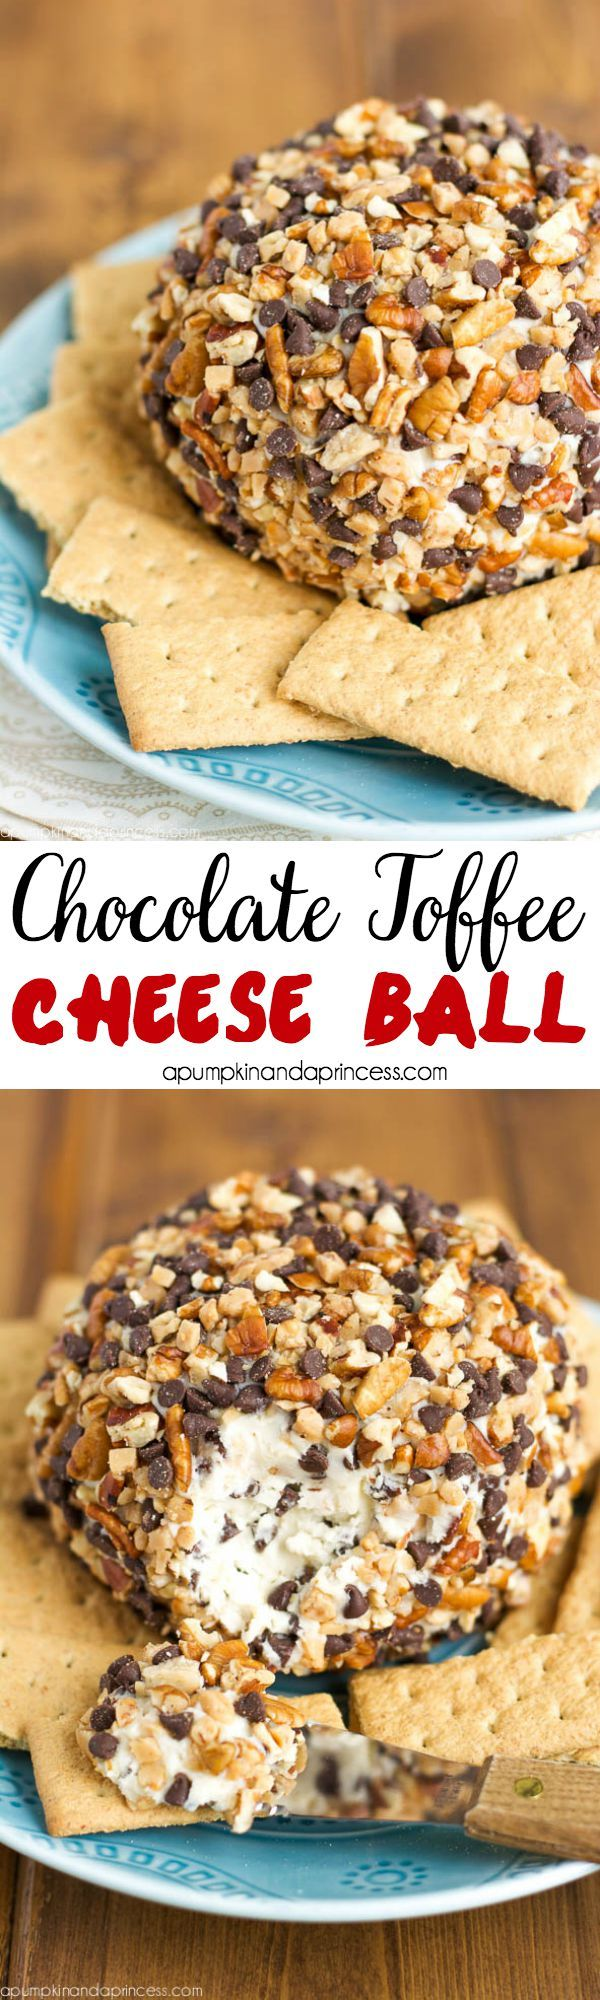 Chocolate Toffee Cheese Ball {No Bake Recipe} - A Pumpkin And A Princess